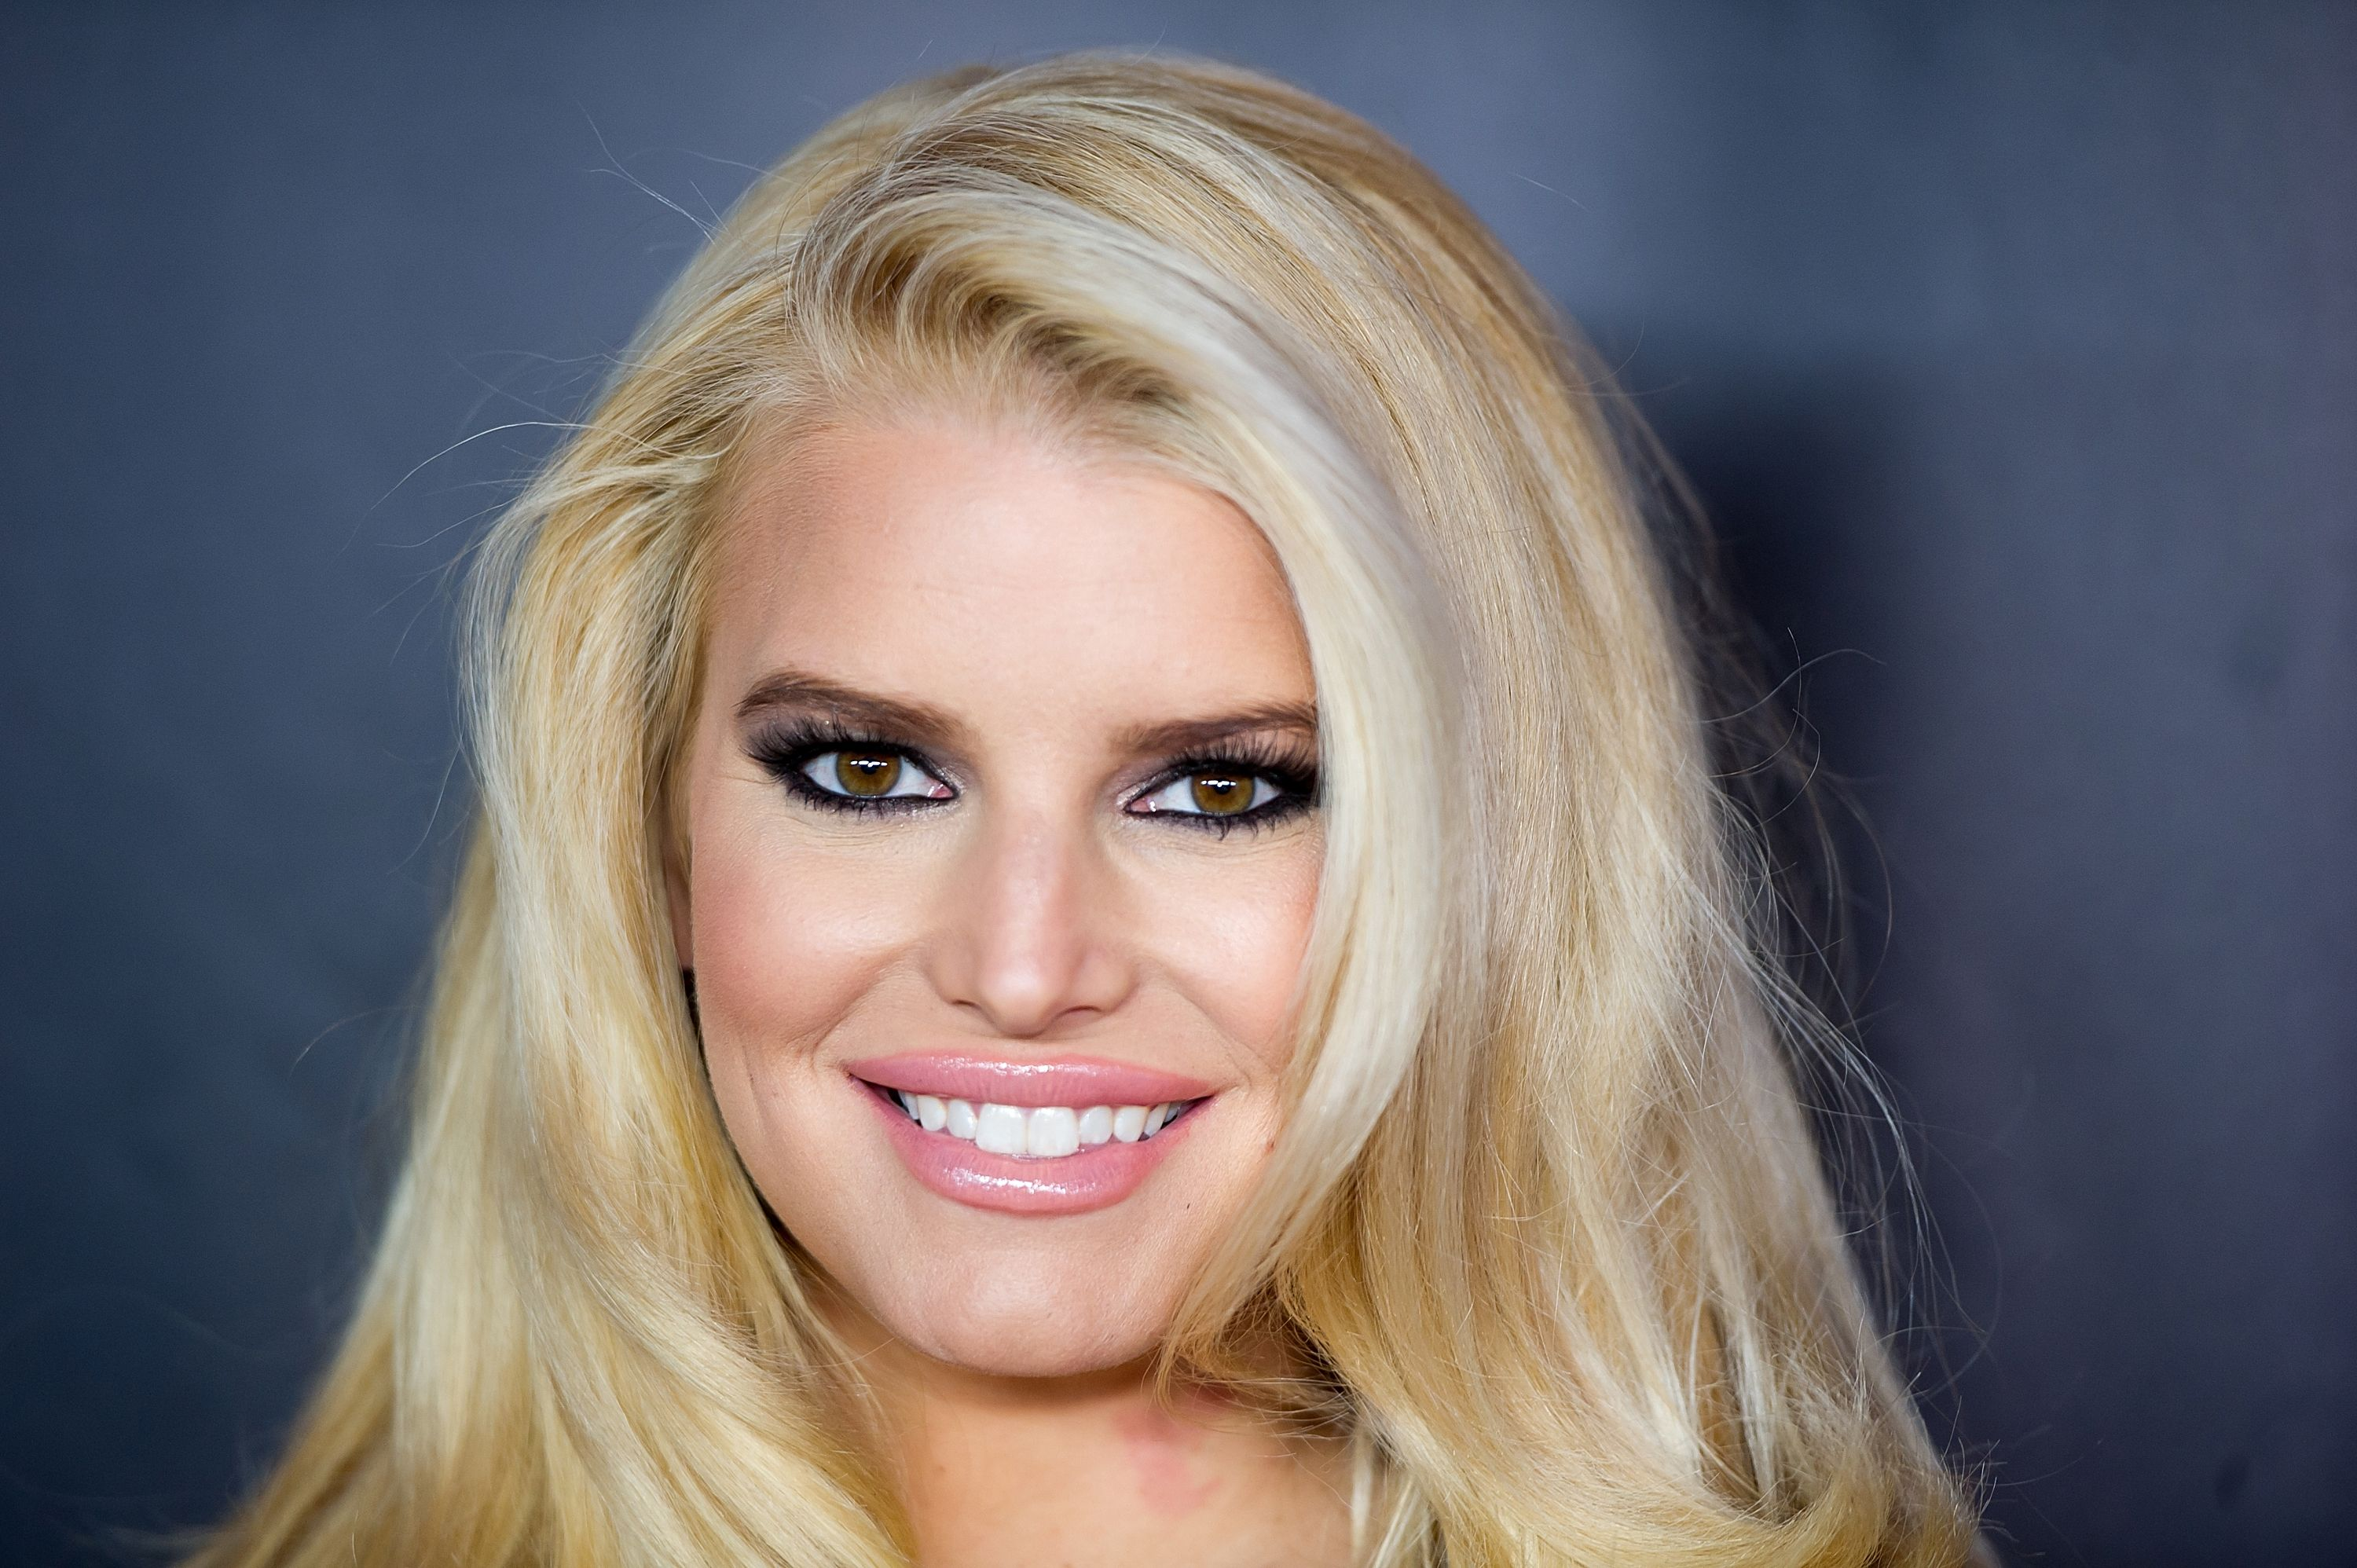 Jessica Simpson at the Beautycon Festival LA, on July 14, 2018, in Los Angeles, California   Source: Getty Images